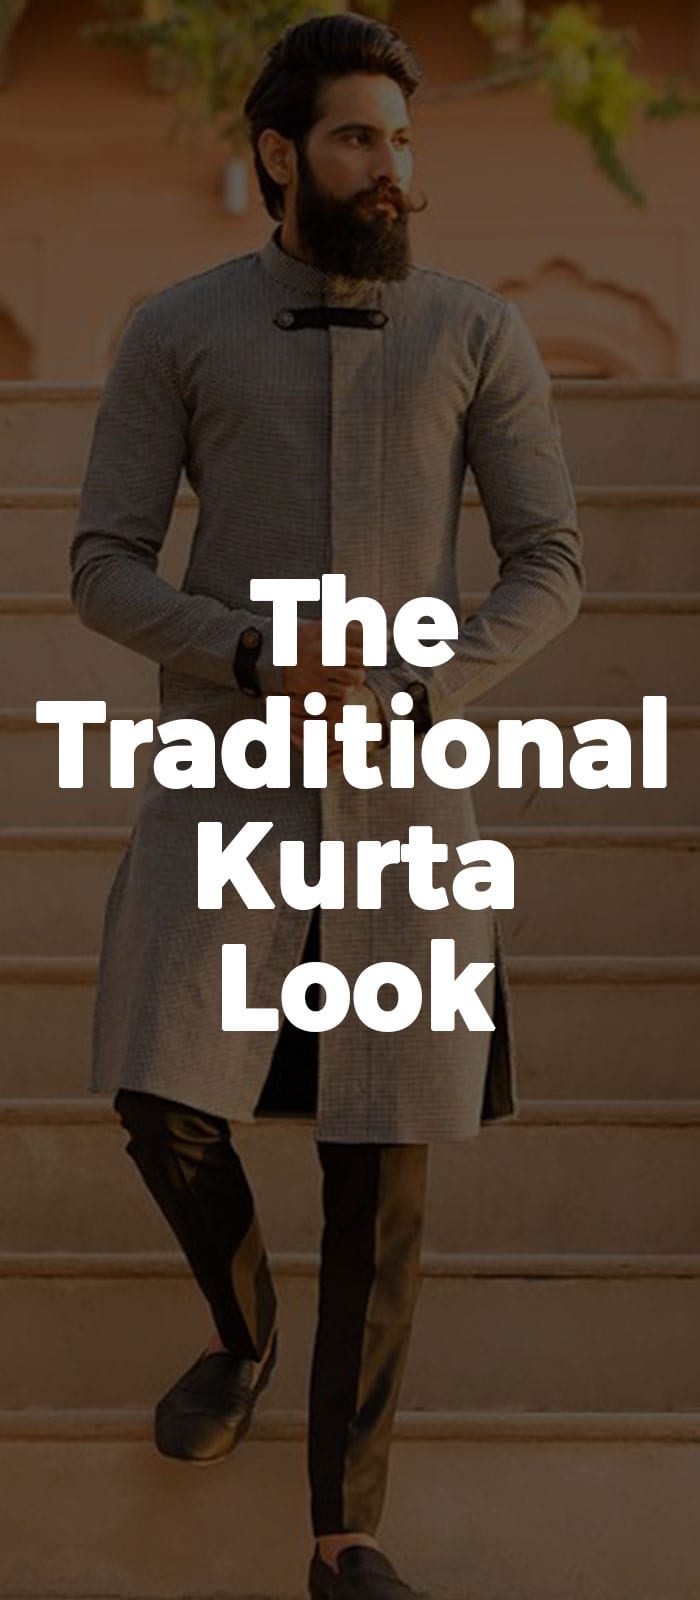 The Traditional Kurta Look